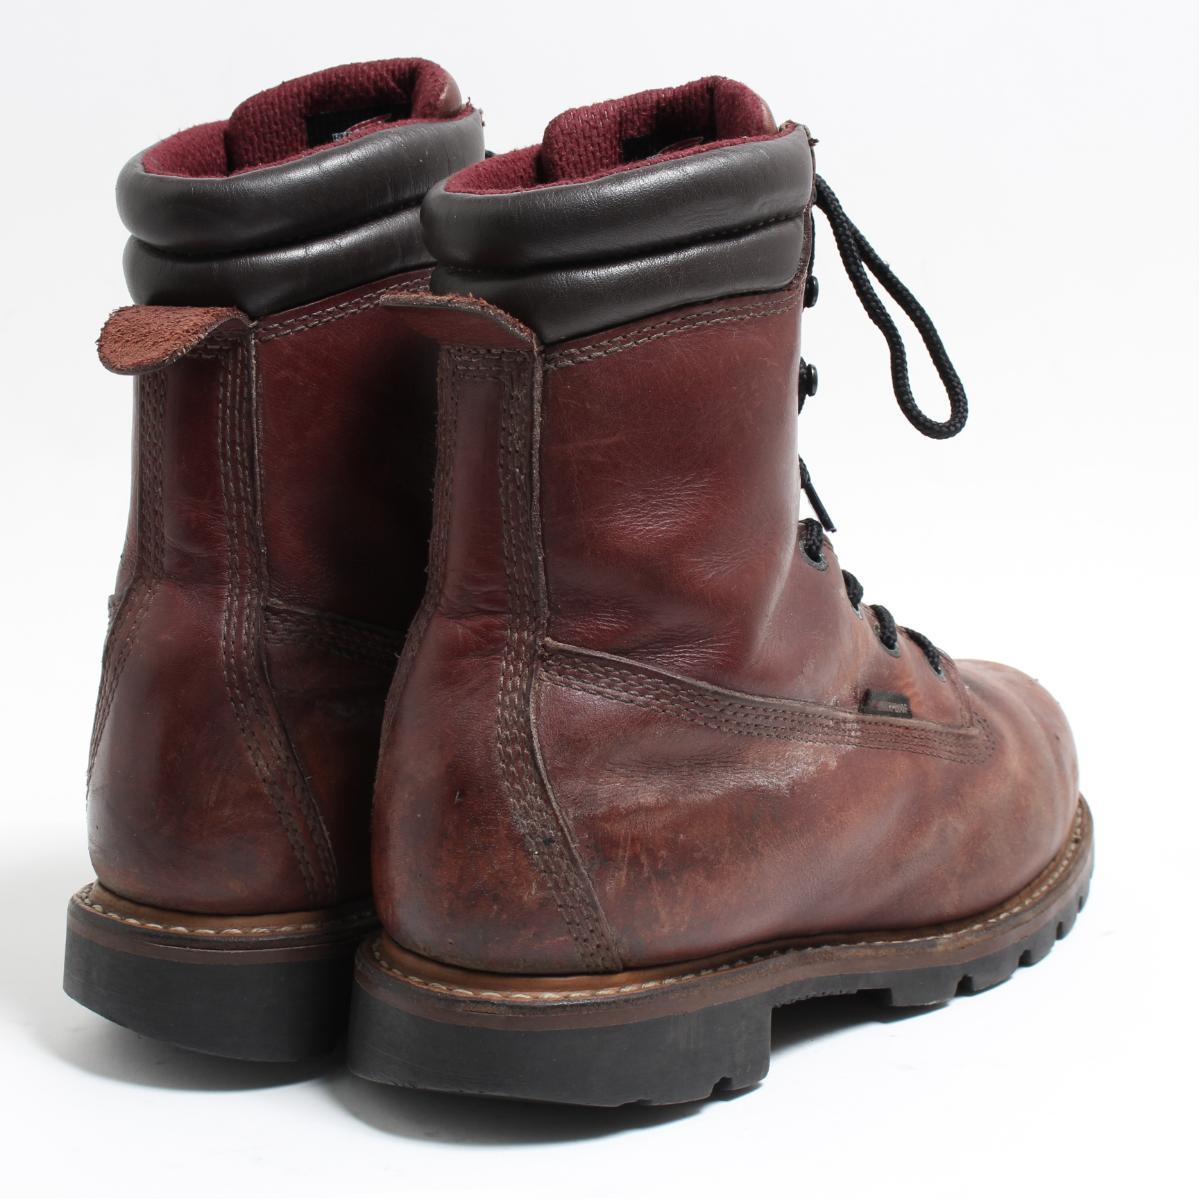 9d8e8286c9ef0 Red Wing Steel Toe Work Boots - Best Picture Of Boot Imageco.Org